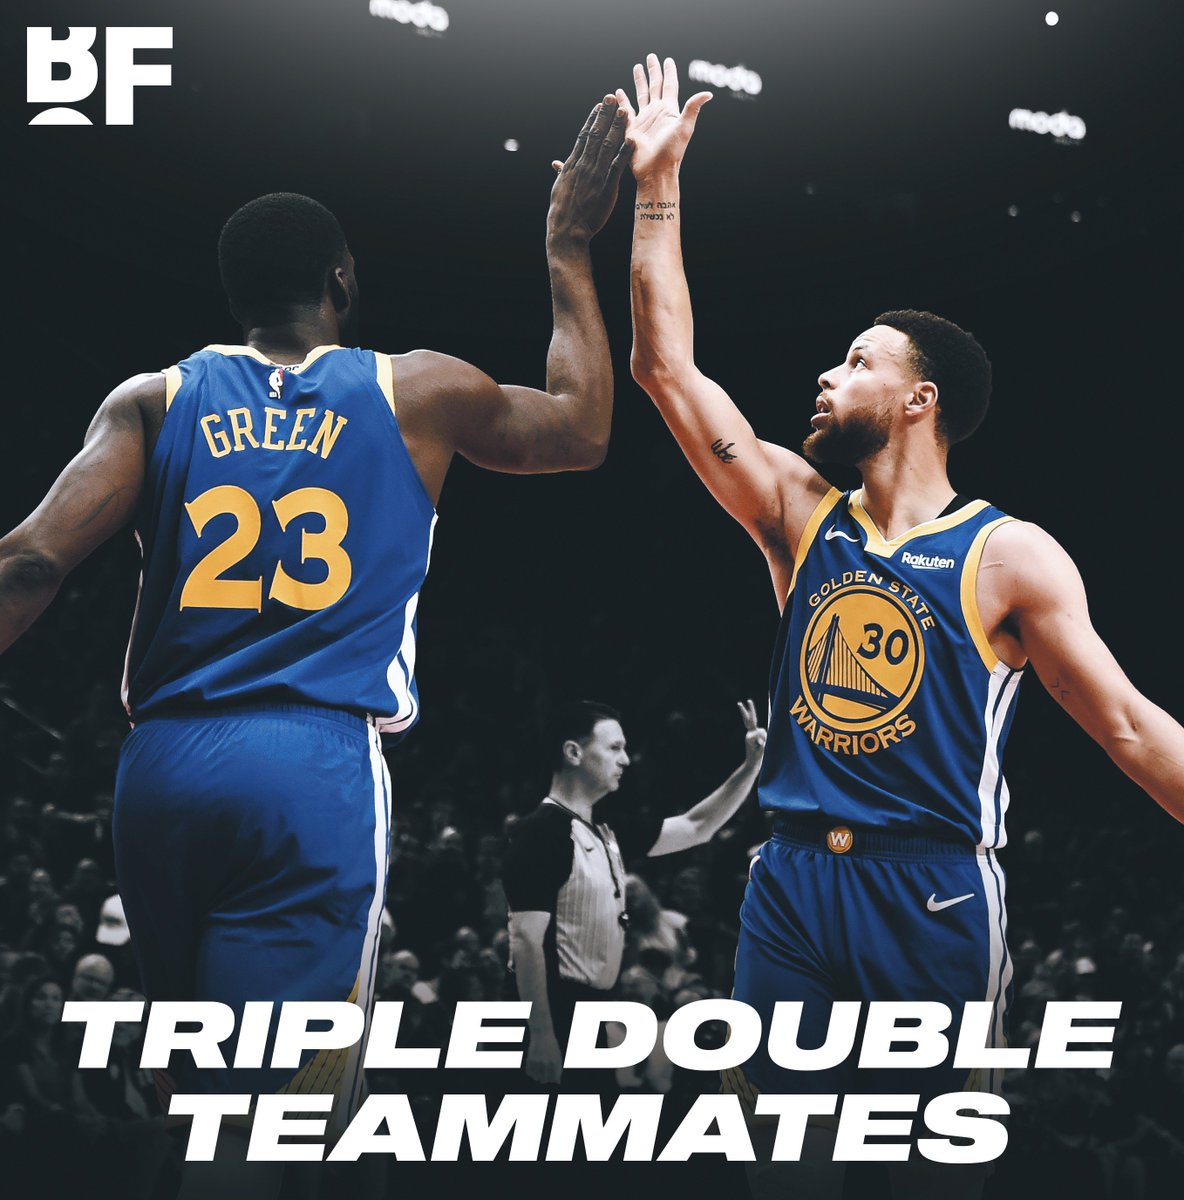 . @StephenCurry30 & @Money23Green are the FIRST teammates in @NBA playoff history to record triple doubles in the same game!